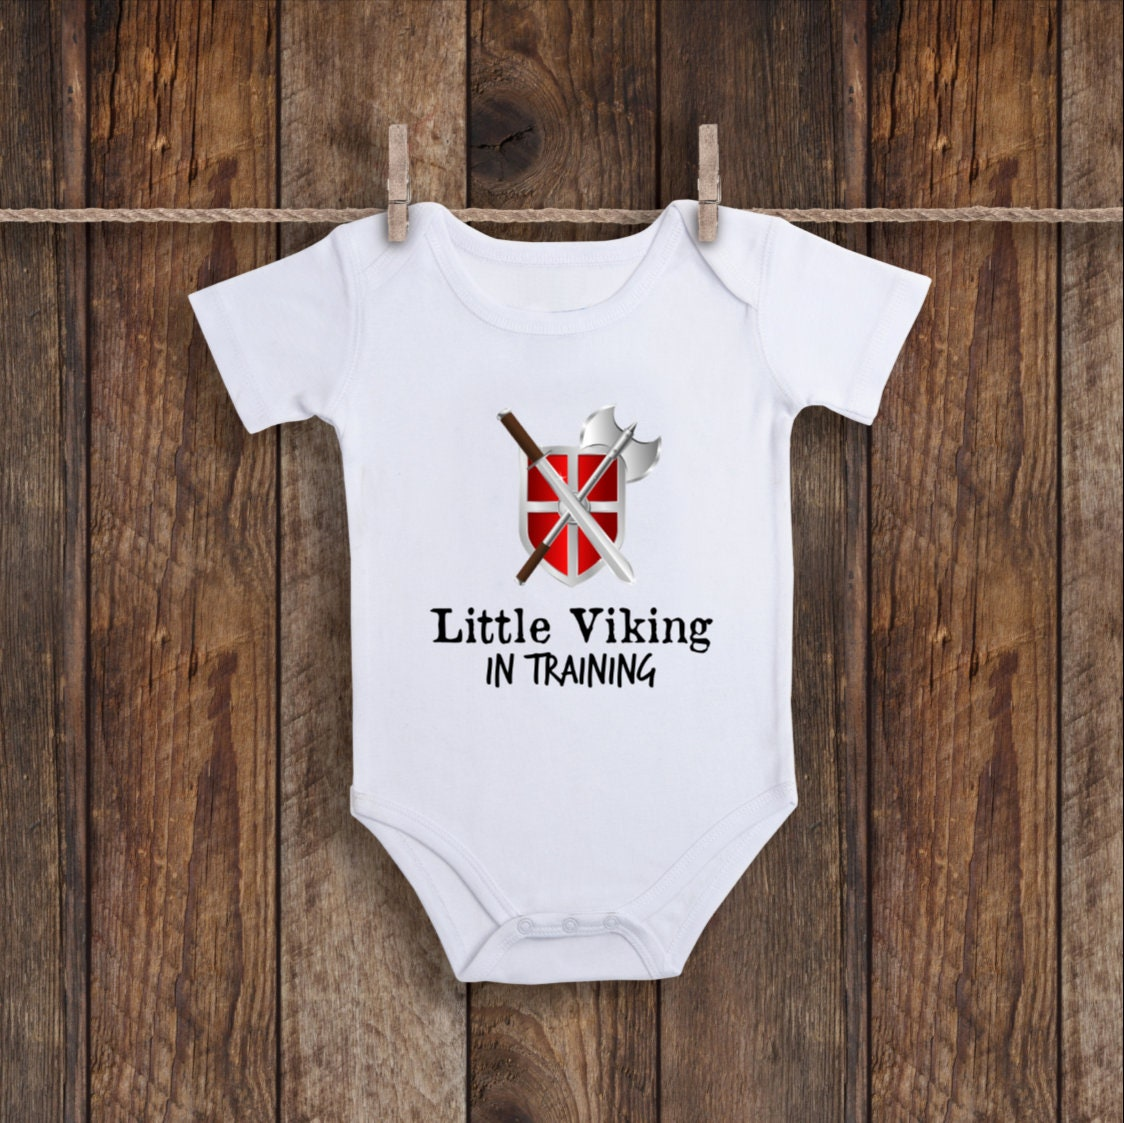 1b0839c62 Little Viking Onesie In Training Funny Baby Clothes Funny | Etsy